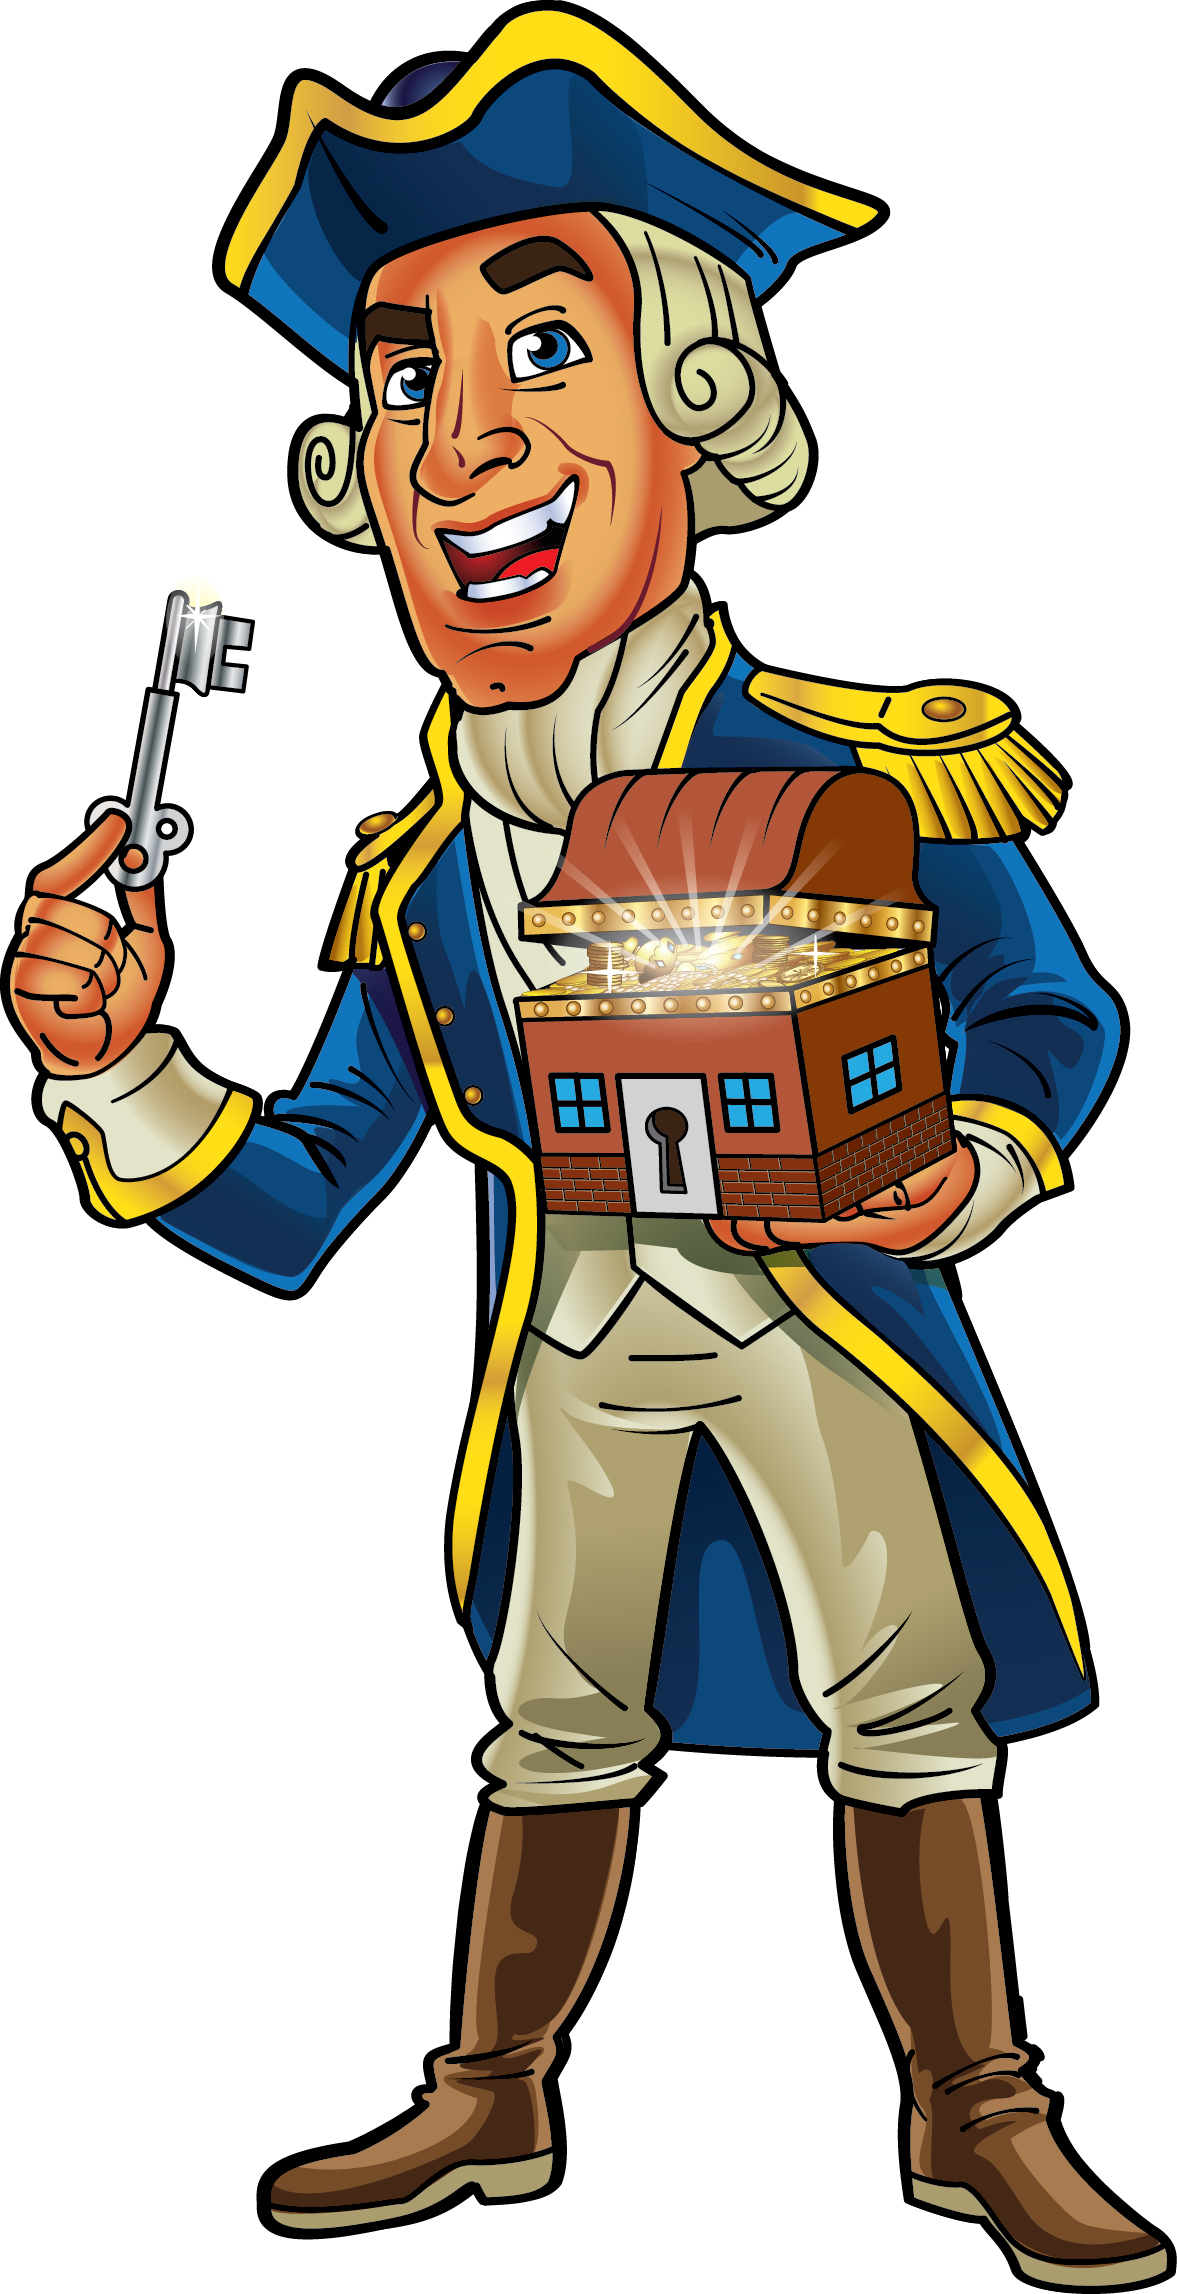 Pirate Captain Mascot